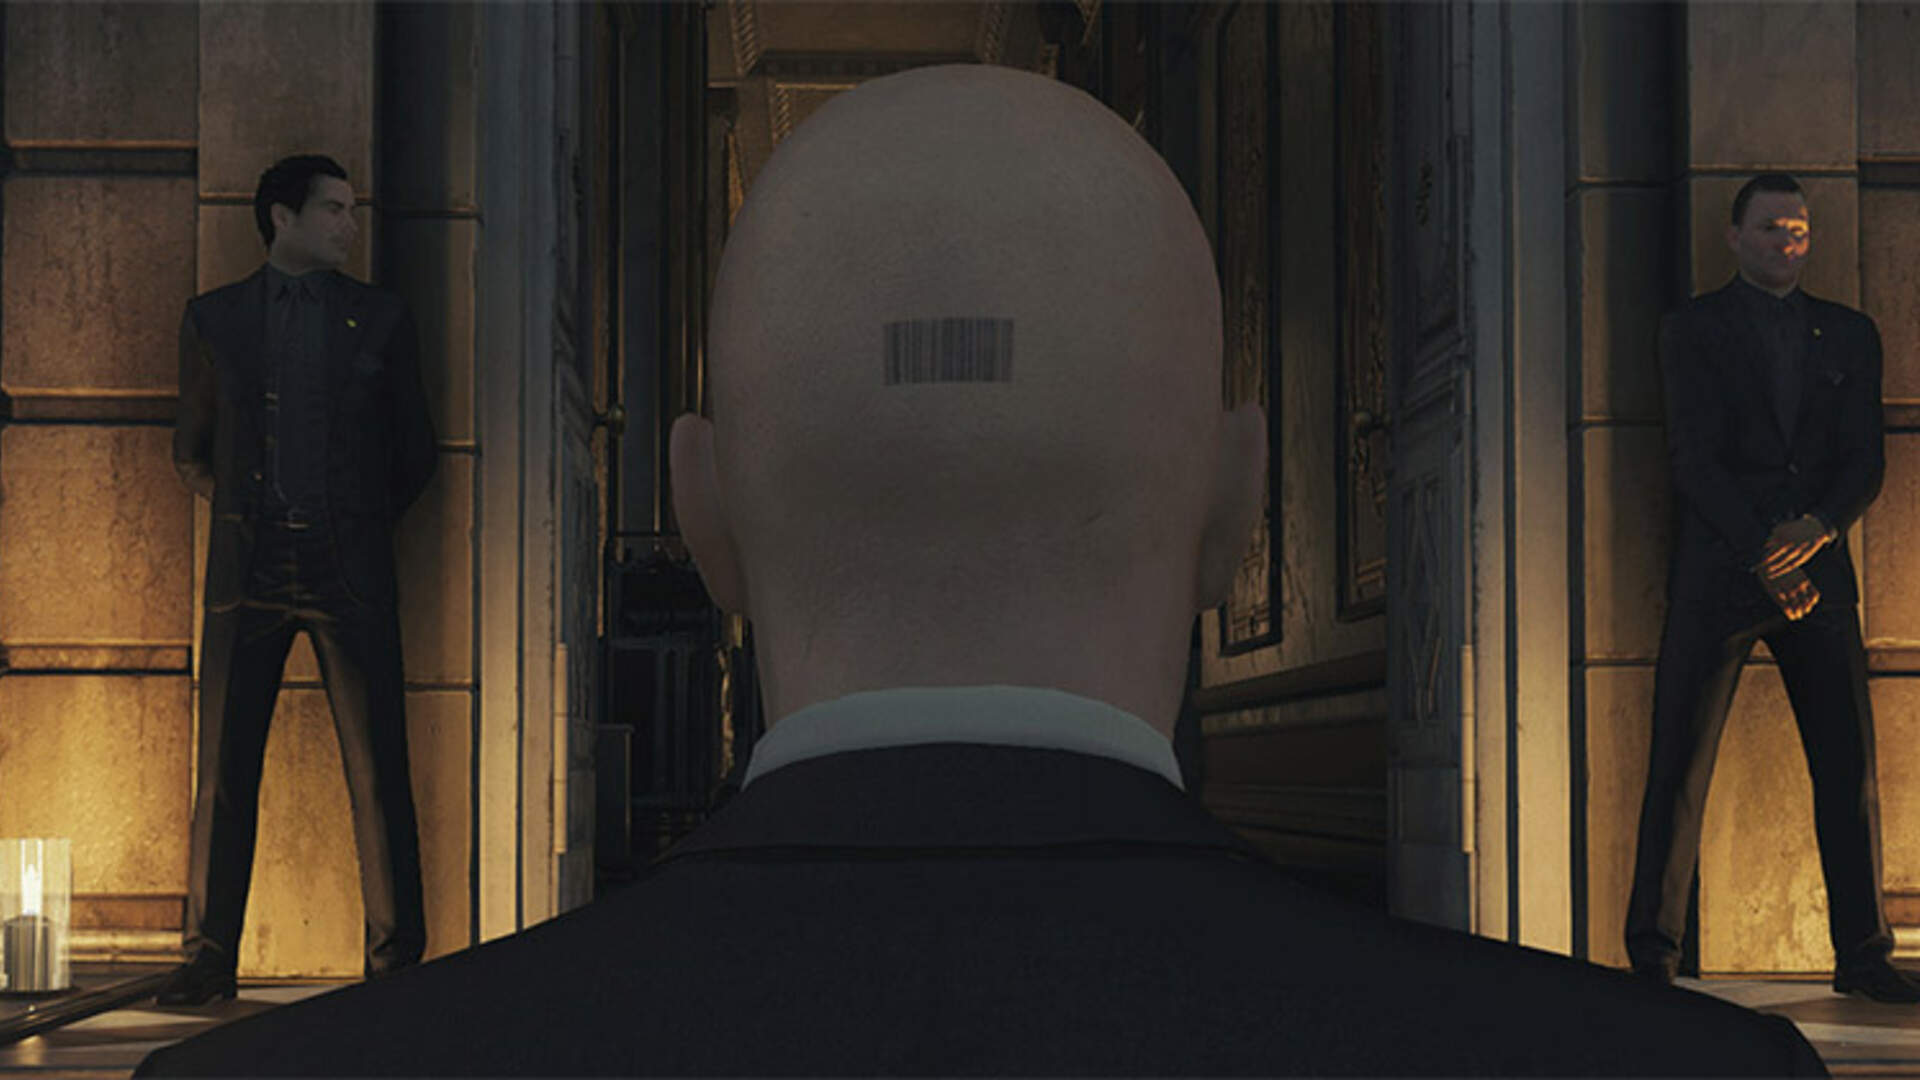 Hitman Episode One PlayStation 4 Review: The Art of Murder